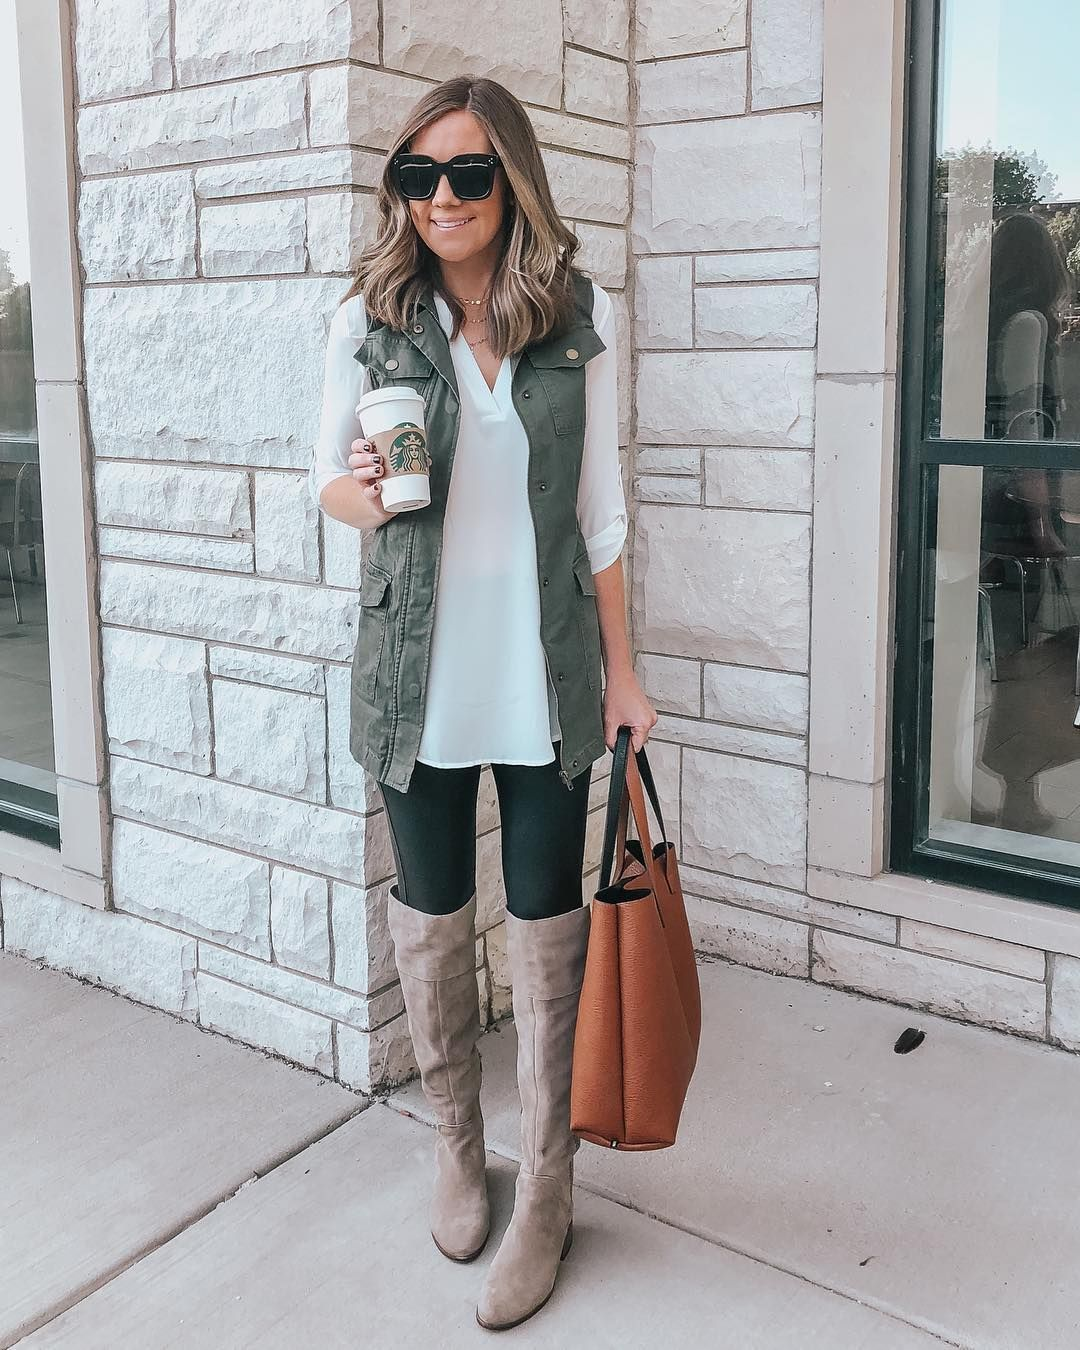 Leggings Outfits: 17 Ways to Style Leggings - Wishes & Reality -   17 dress Winter leggings ideas